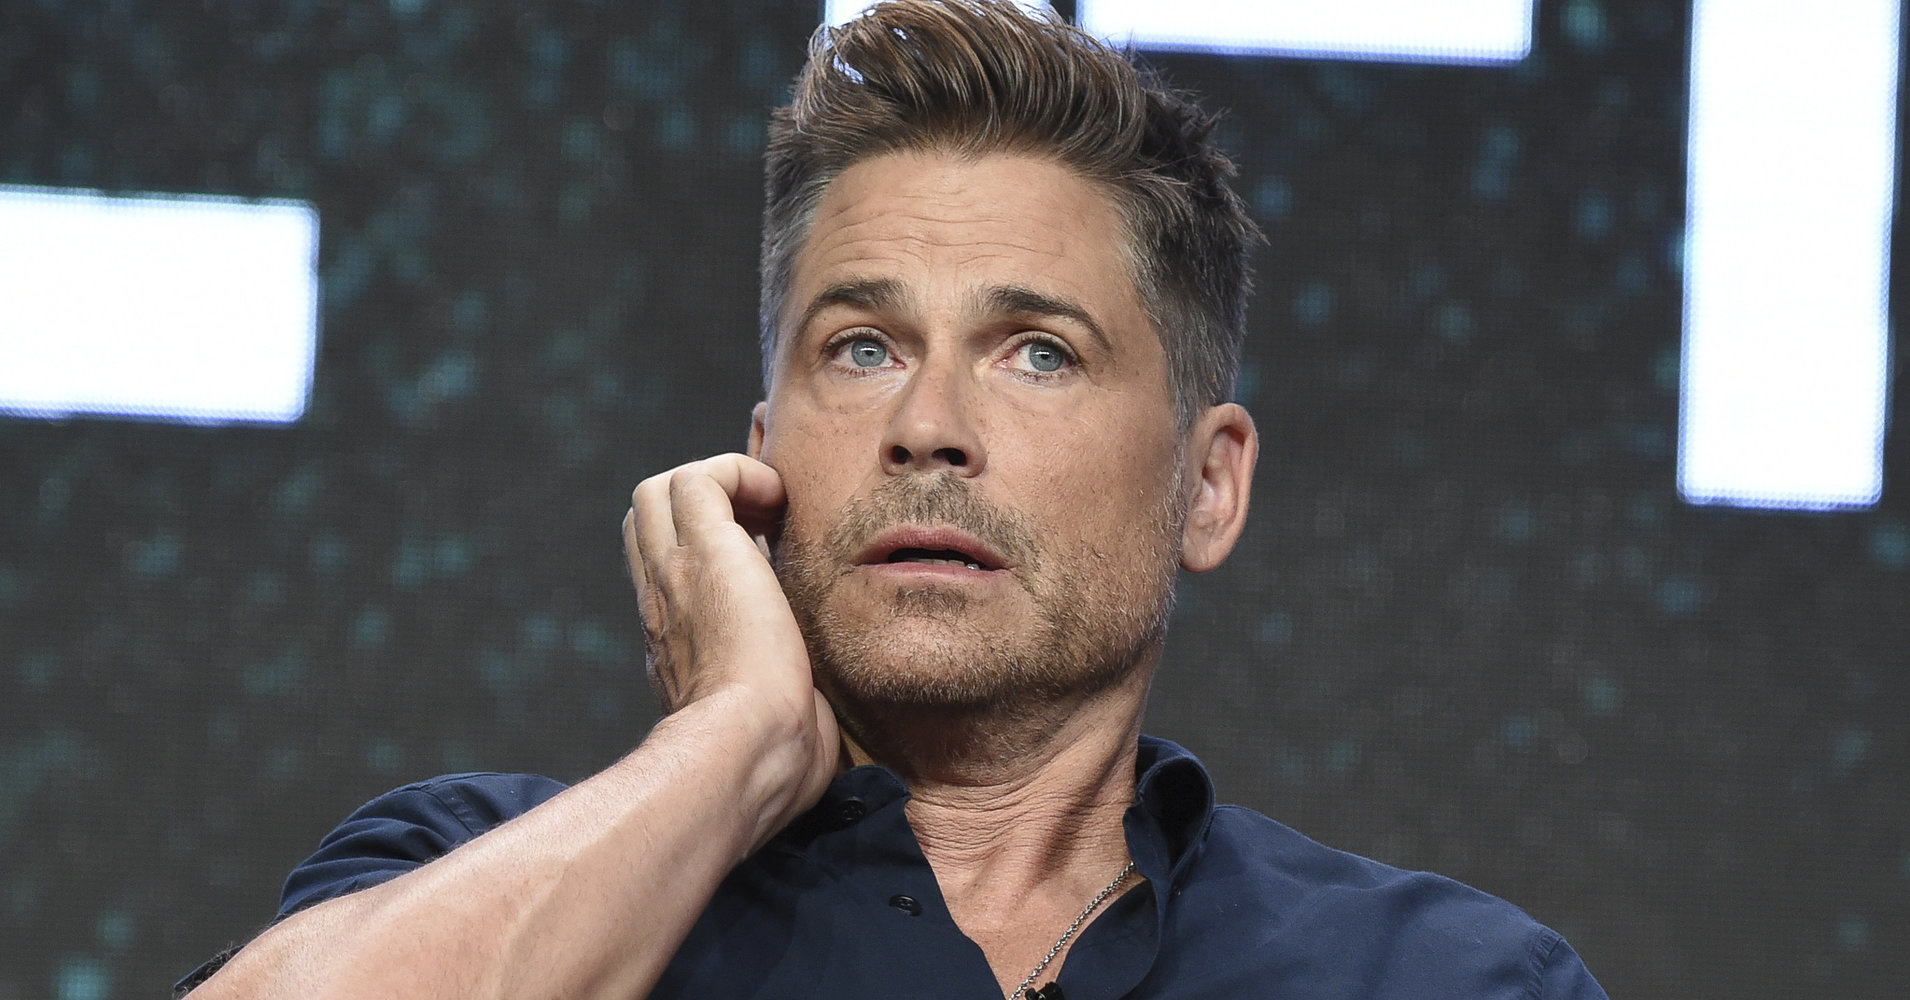 rob-lowe-talks-turning-down-the-mcdreamy-role-on-greys-anatomy-says-he-has-no-regrets